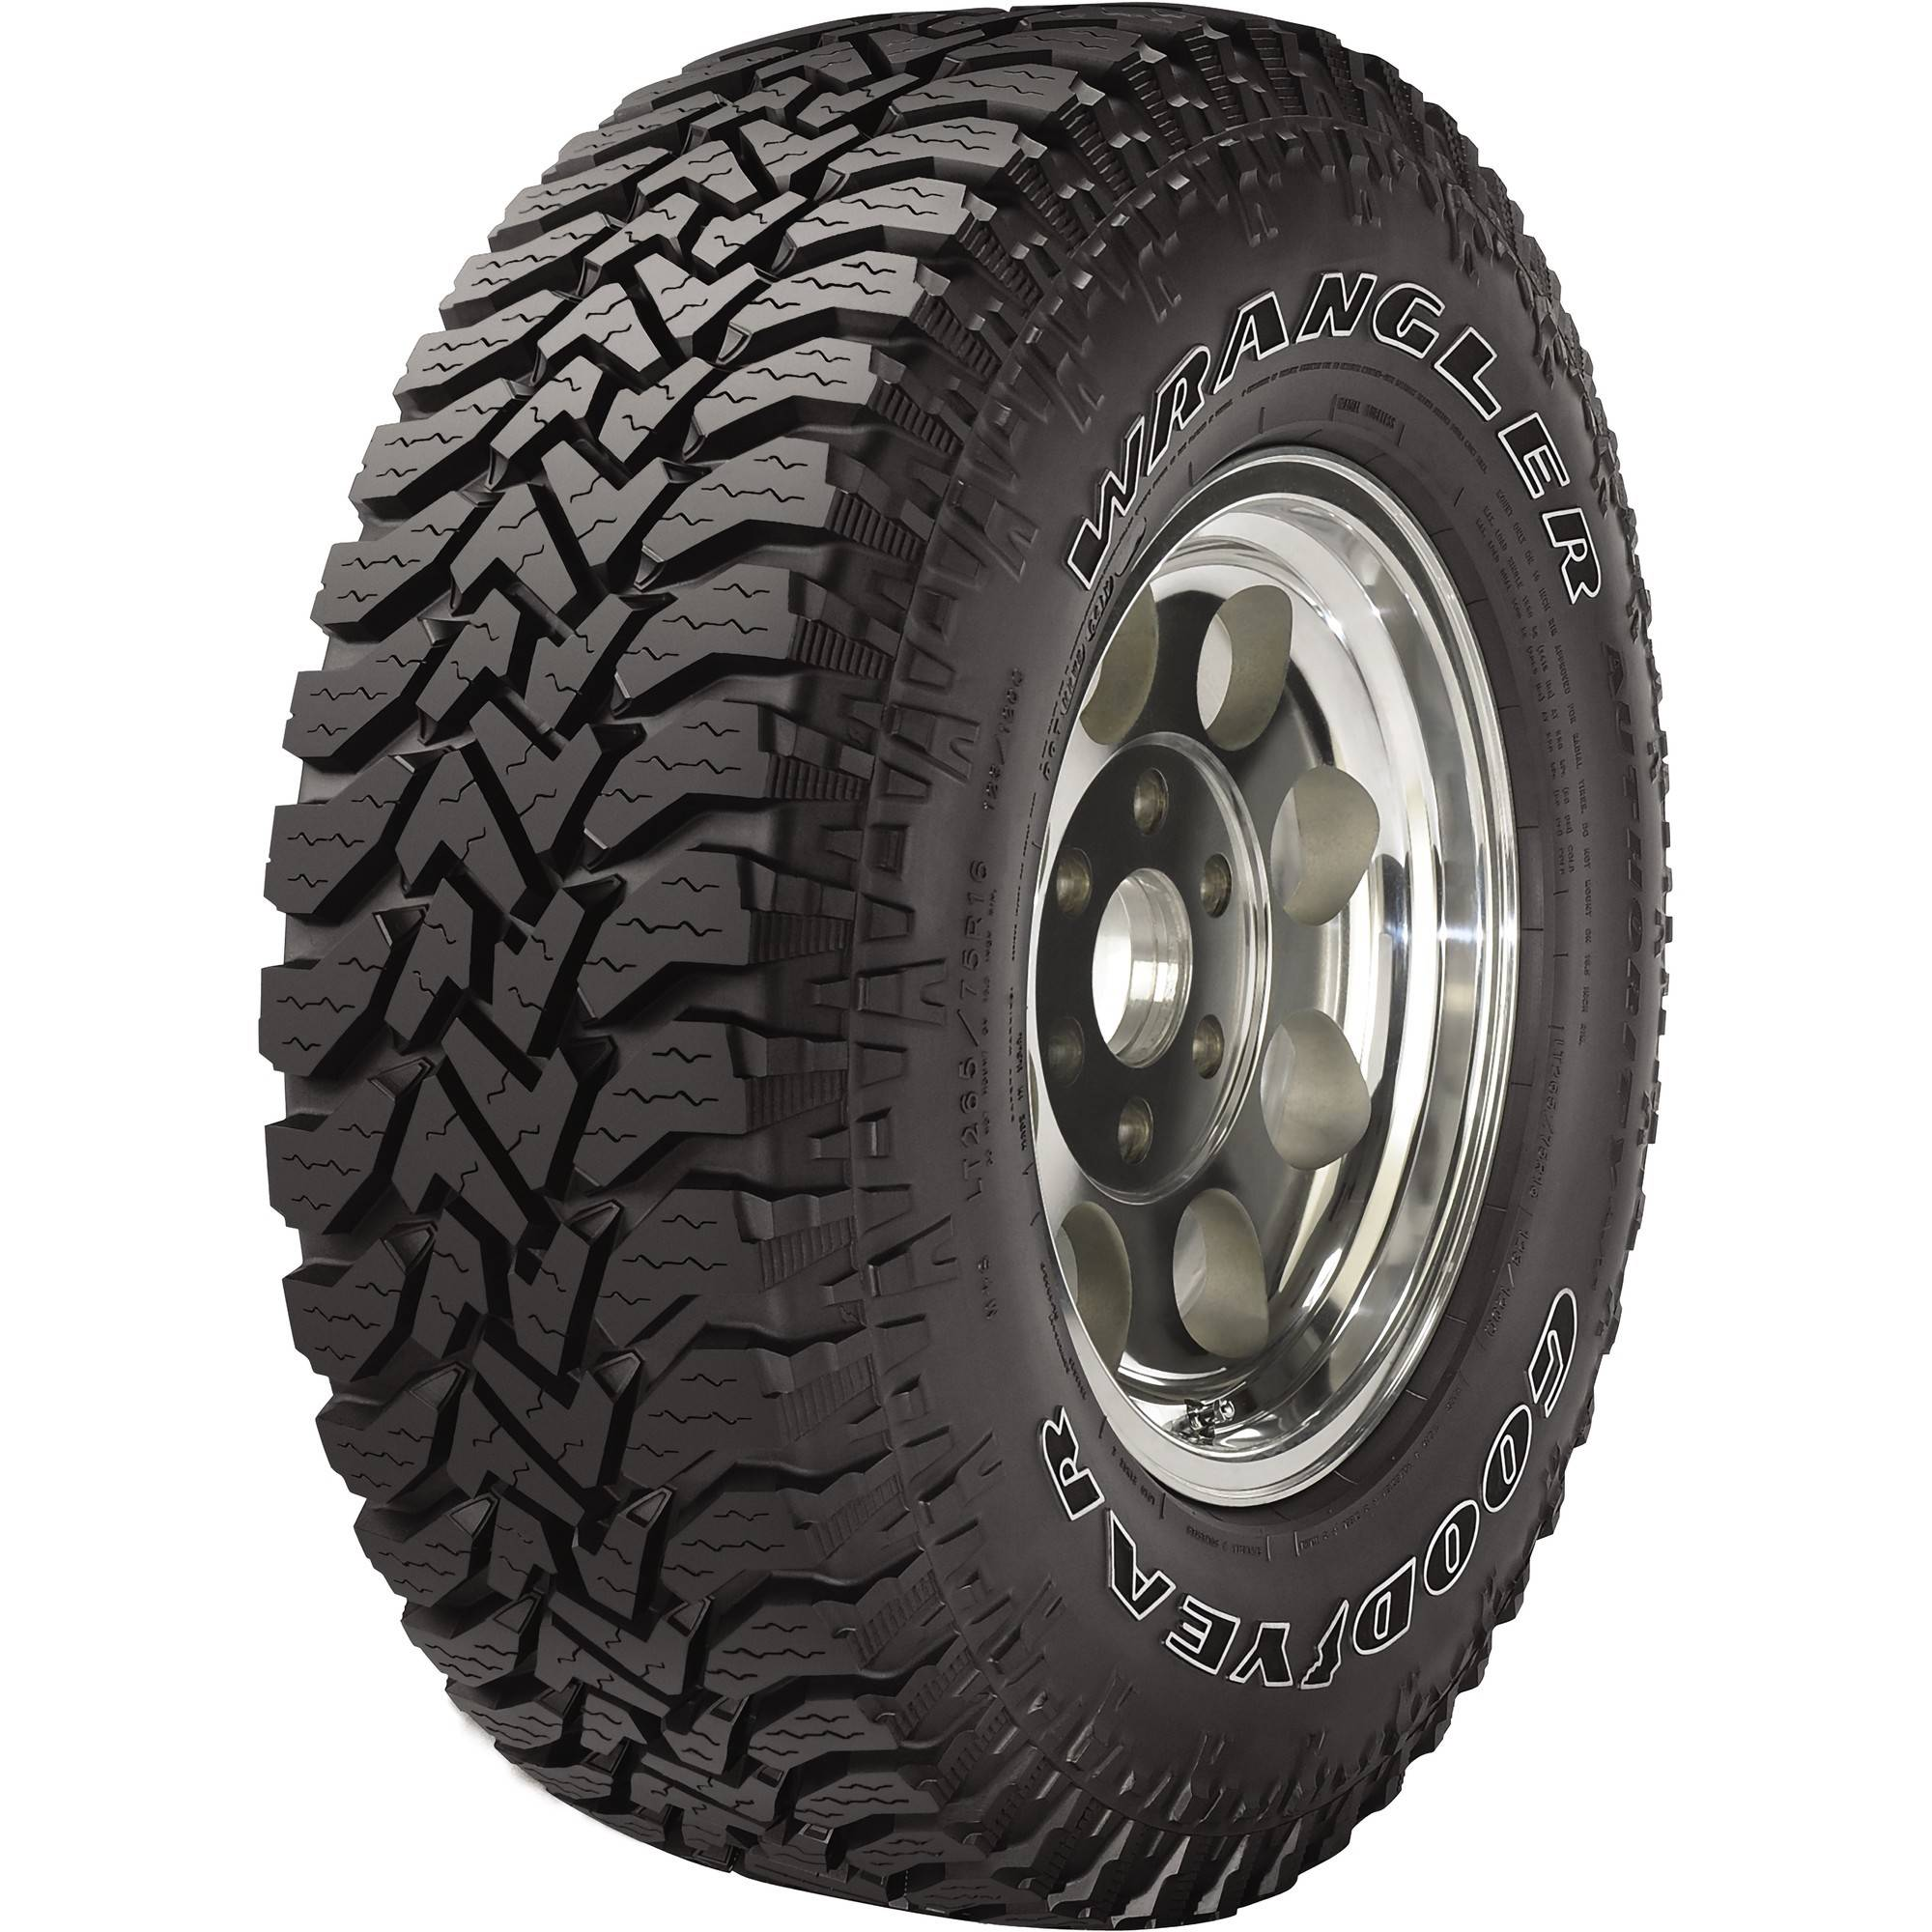 Goodyear Wrangler Authority Tire LT265/70R17C